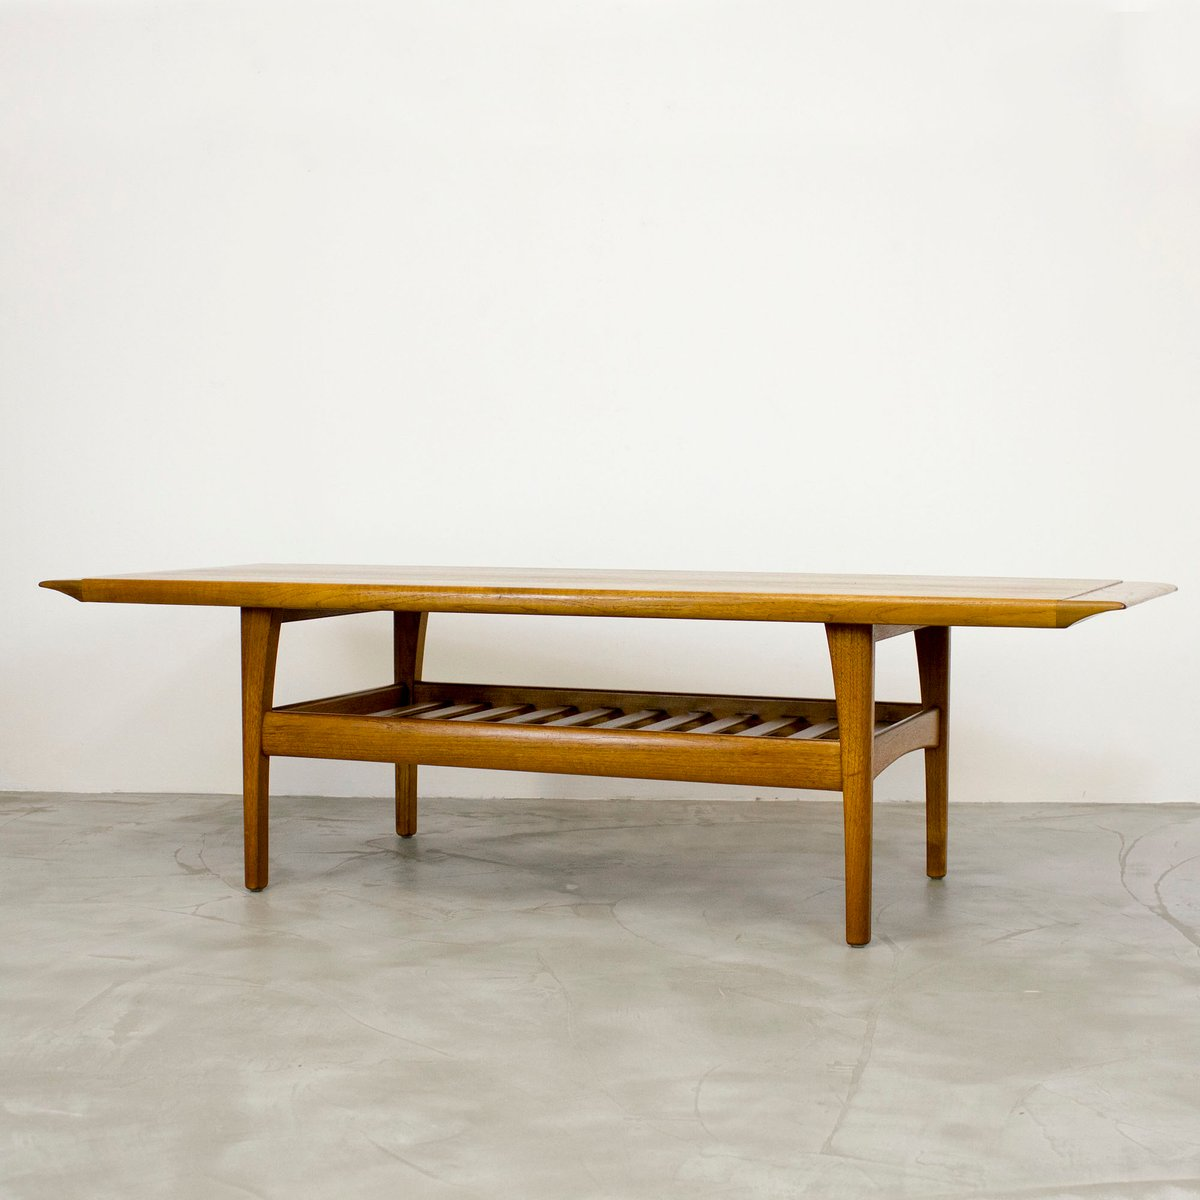 Scandinavian Teak Coffee Table: Danish Teak Coffee Table With Magazine Shelf, 1960s For